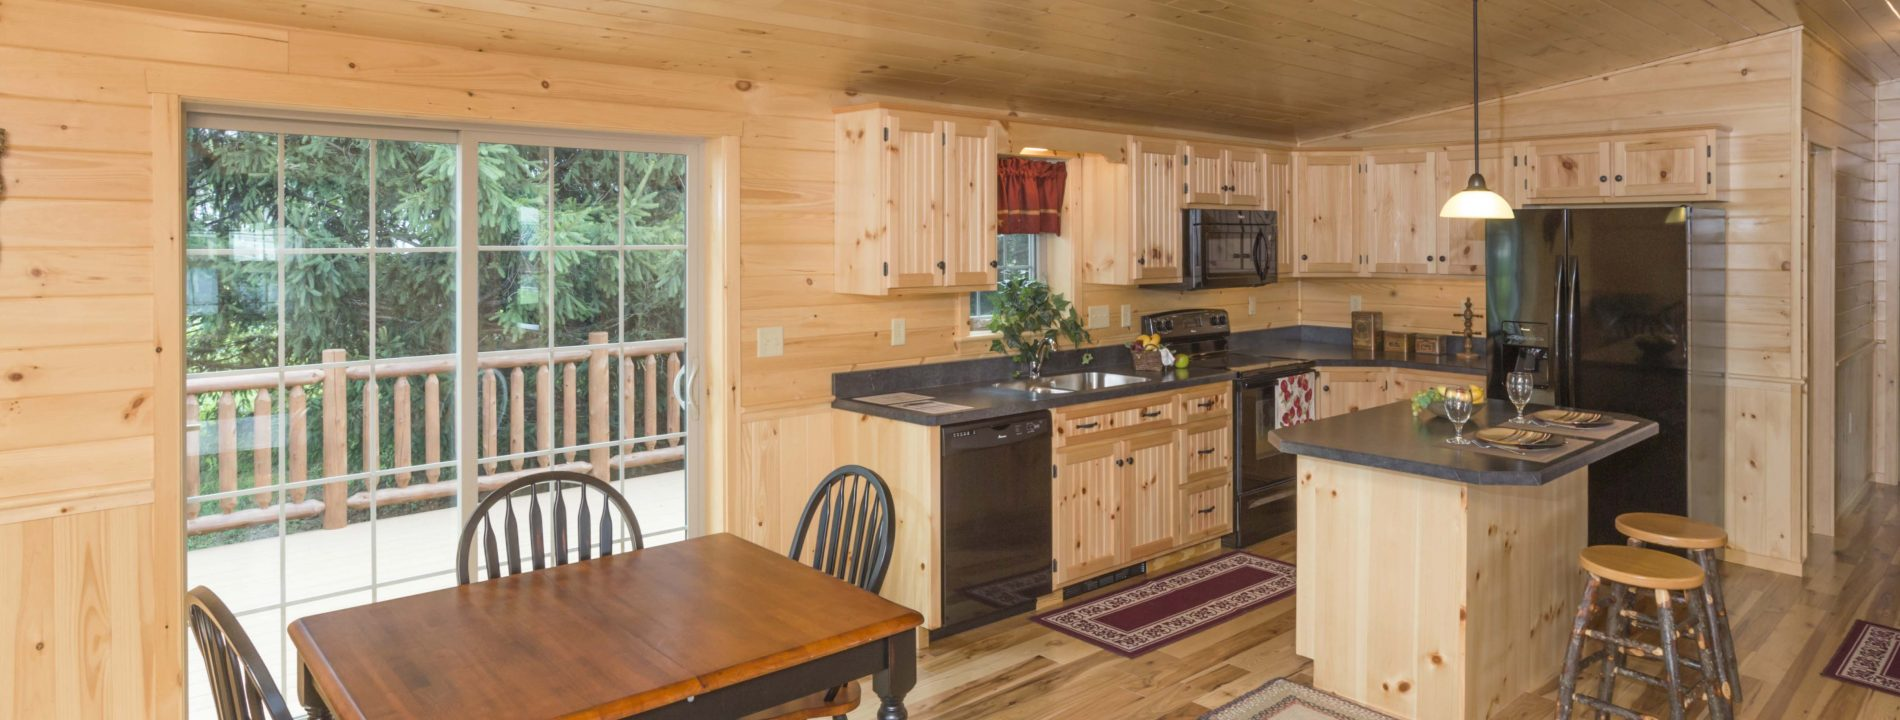 amish log cabin plans for interior of fronteir log homes